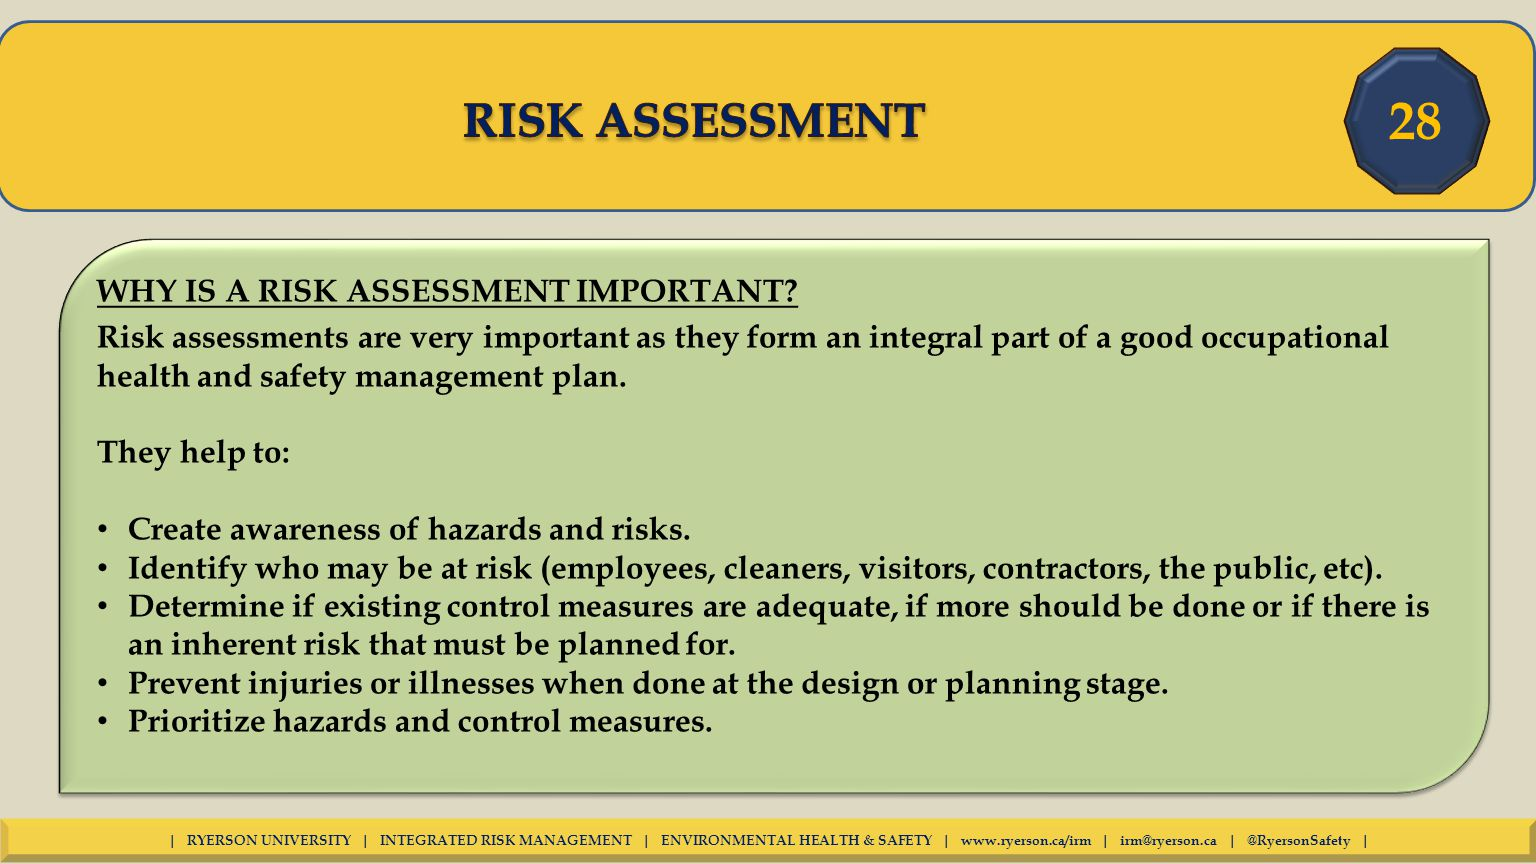 why are risk assessments important The month of september brings cooler weather, football and of course, health risk assessments at faith technologies, incwhat is a health risk assessment (hra) it's a health screen, performed at the work site that provides employees with a report of the health screen results including information about health risks, and is important for many reasons.